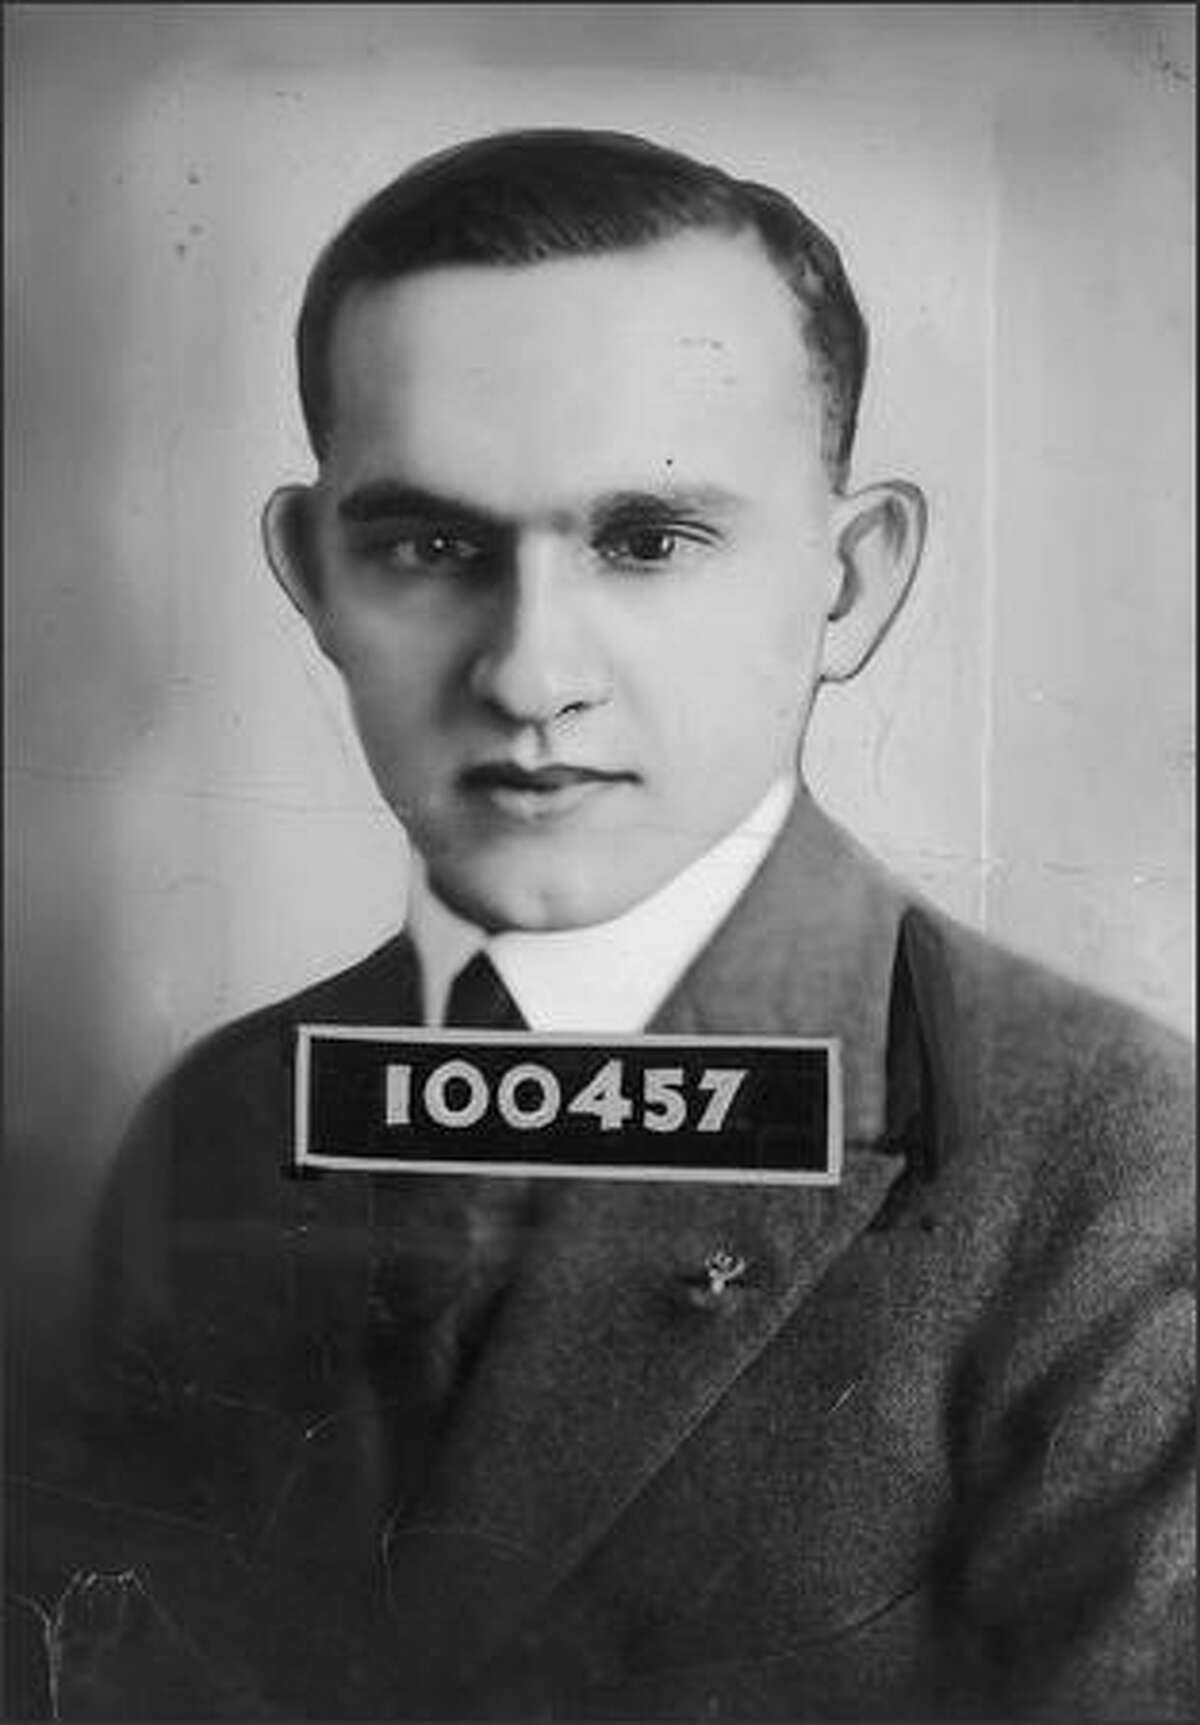 Brougham was promoted to managing editor of the P-I in 1925, the year this P-I identity card photo was taken. He lasted three years before returning to the helm of the sports department.